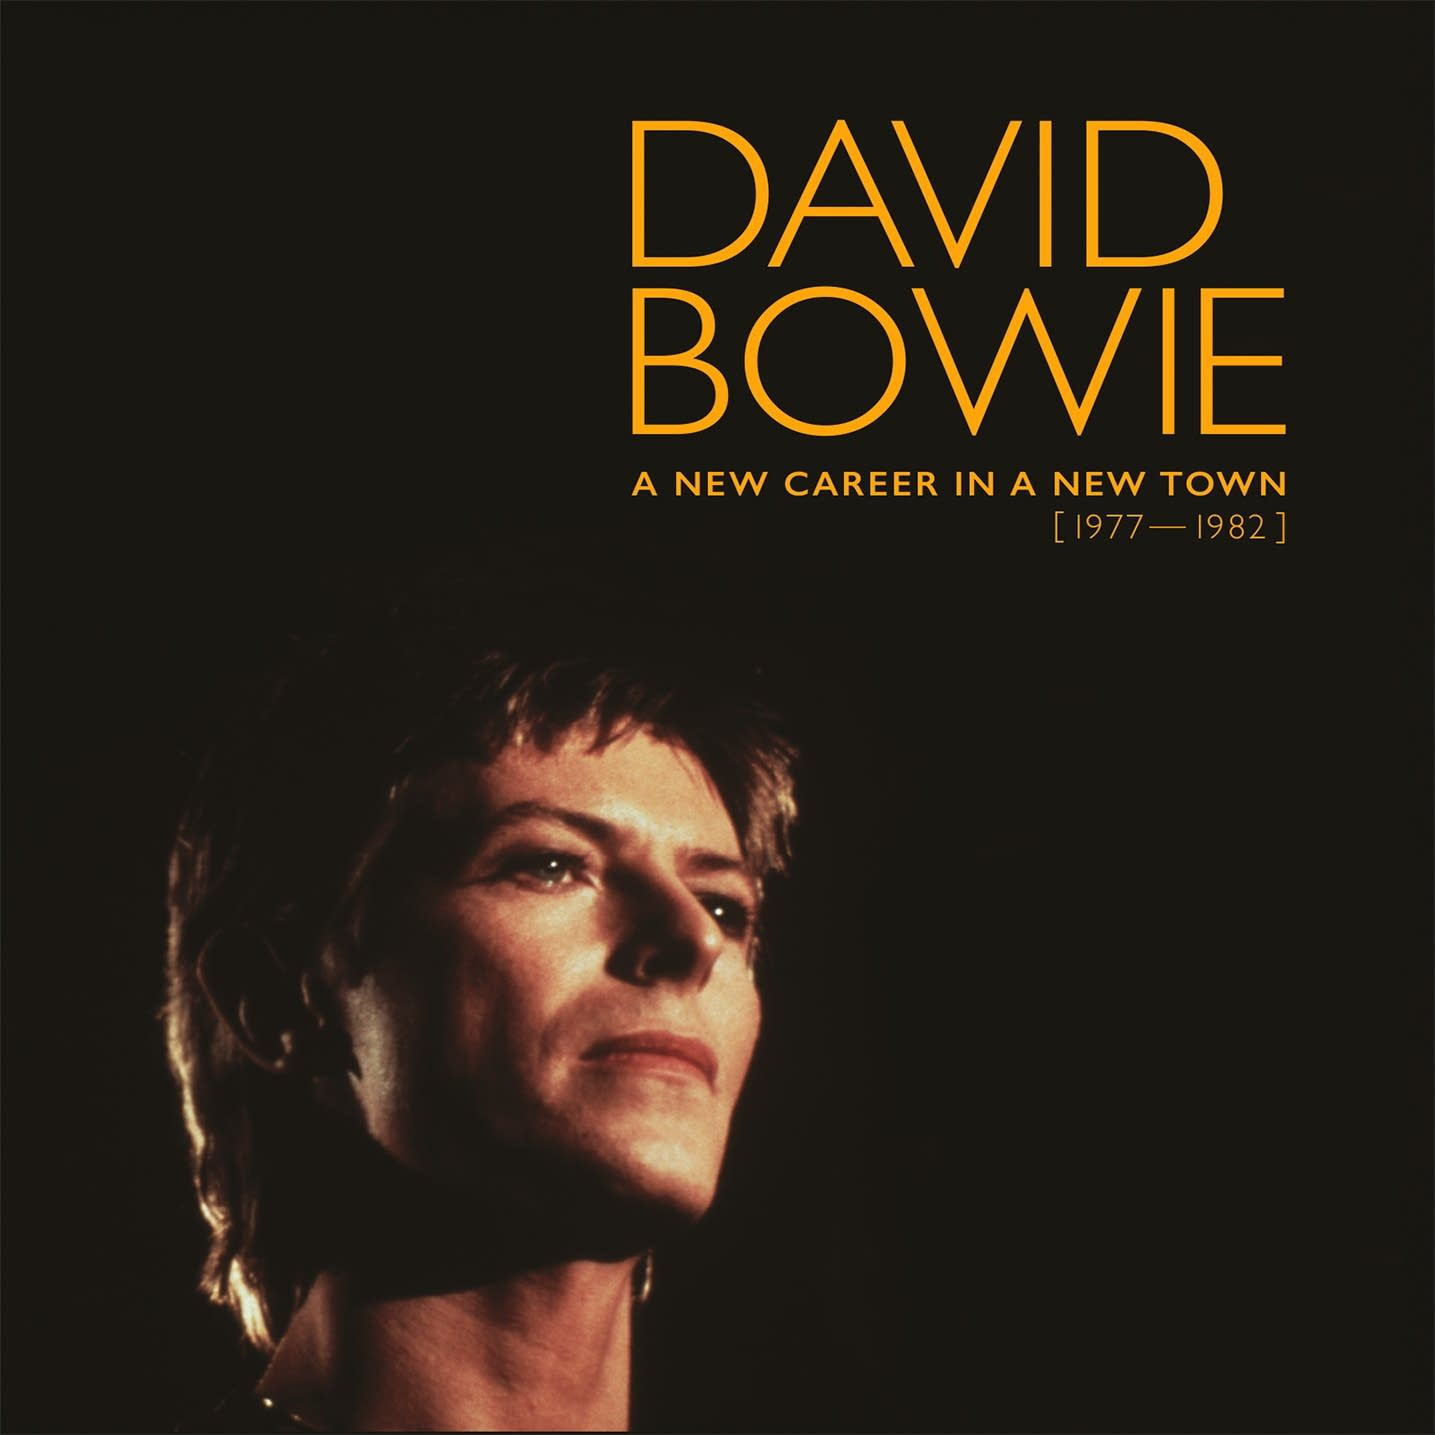 David Bowie a new career in town